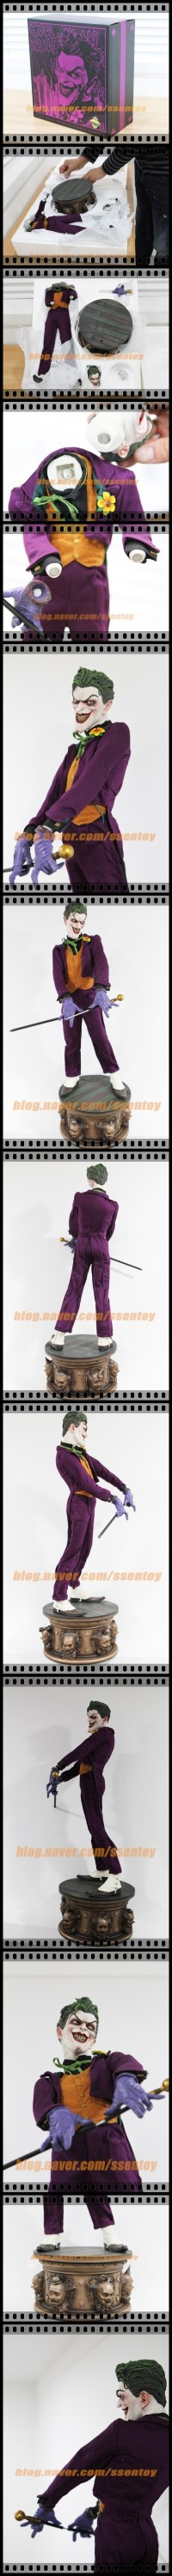 DC COMICS_the joker | The Plastic Figure World